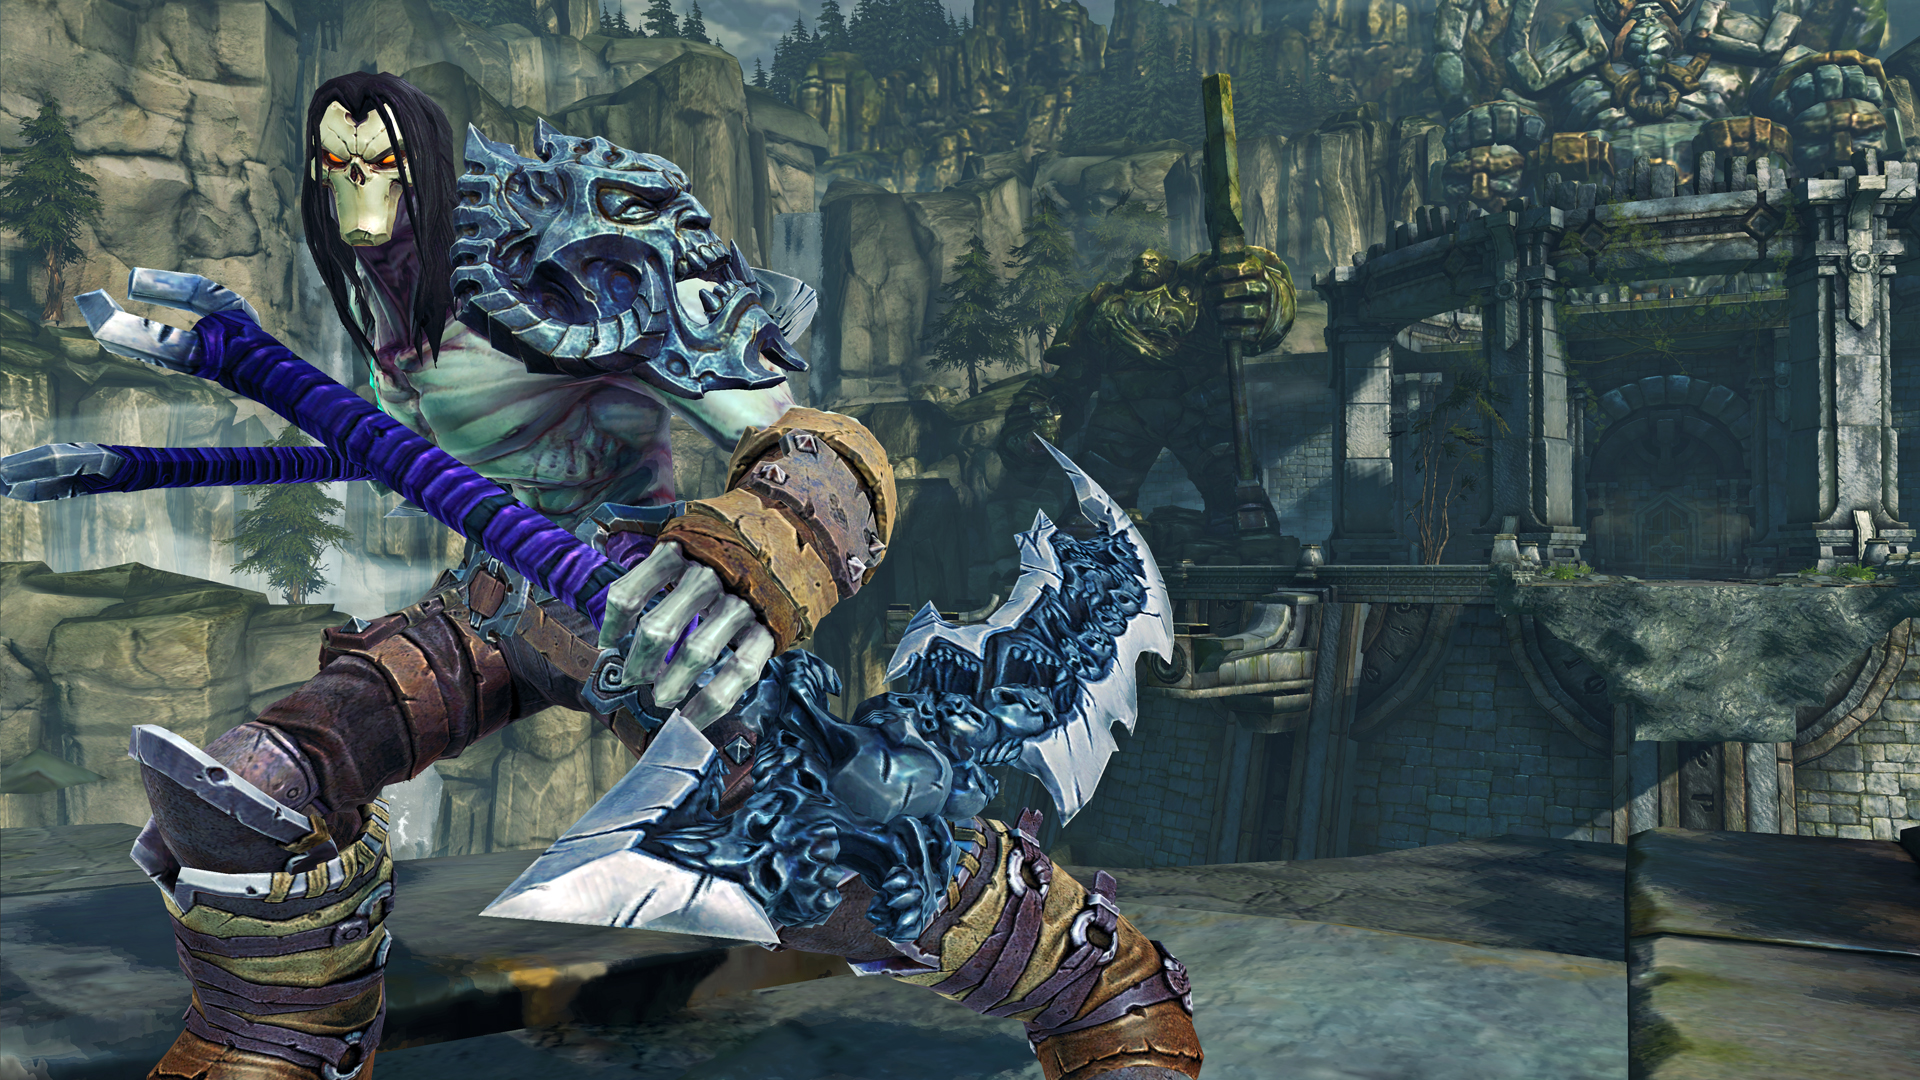 How to run Darksiders 2 on a very weak 2000 PC 67